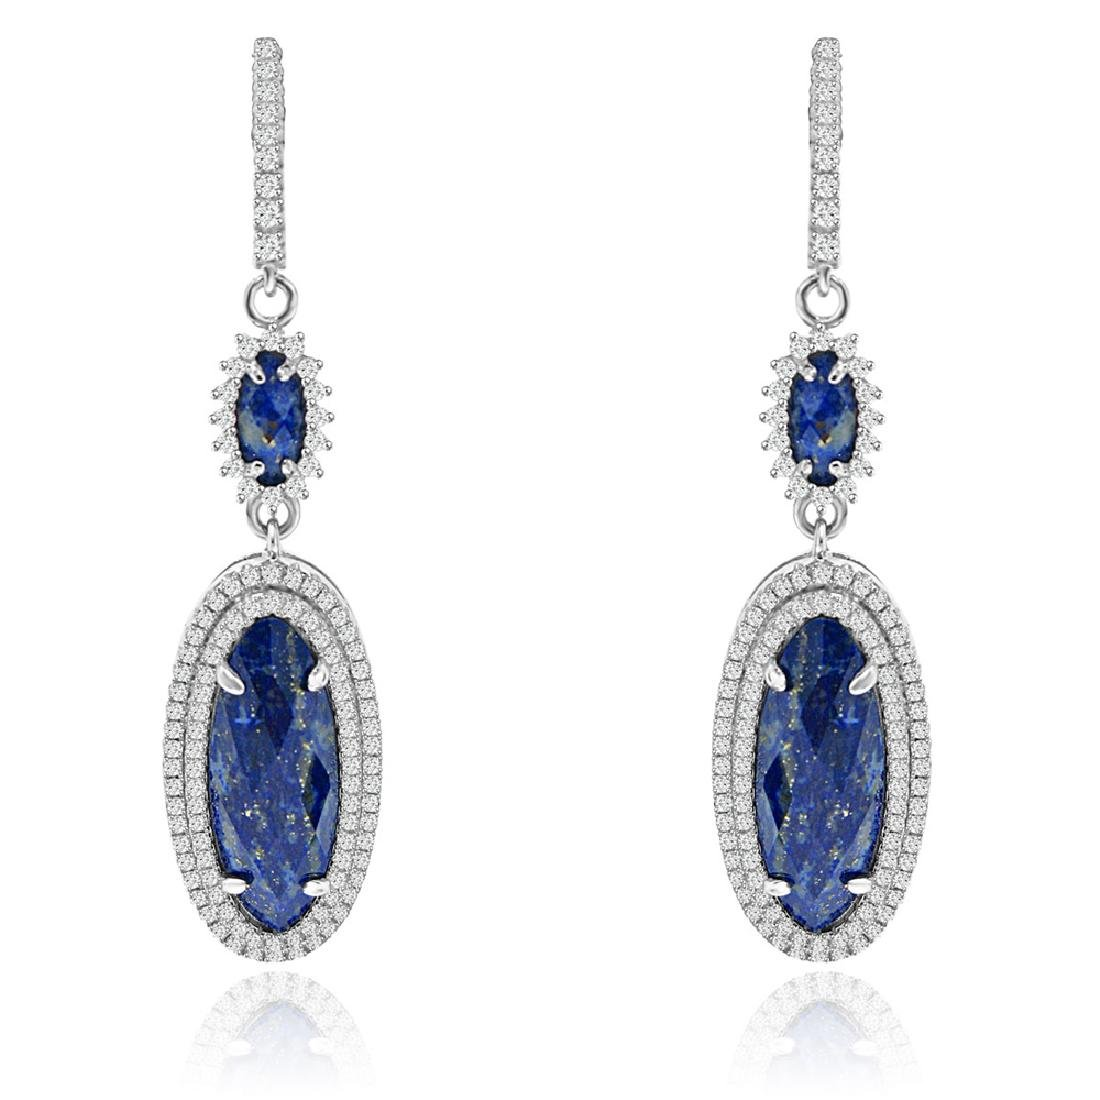 Sterling Silver Rhodium Plated Simulated Lapis Lazuli